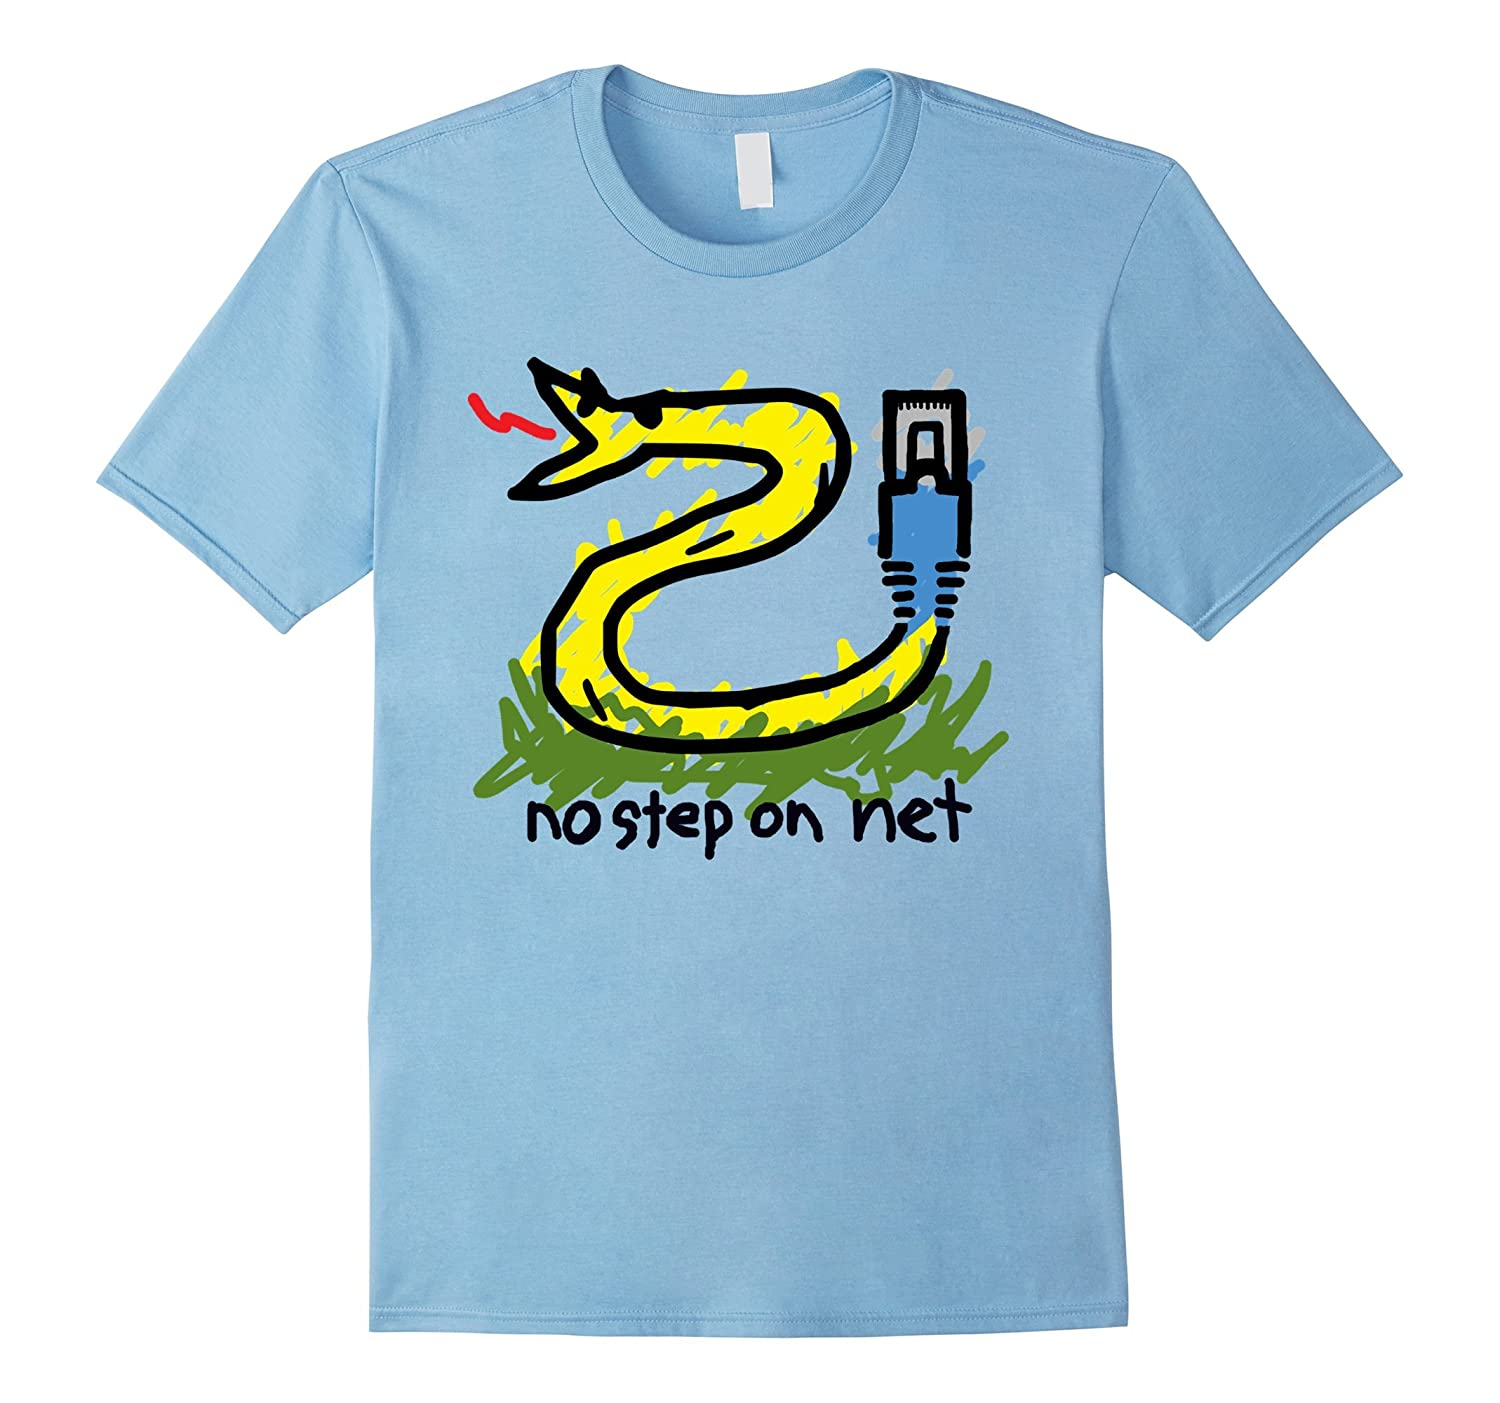 Net Neutrality Shirts: No Step on Net t-shirt (Colored)-TH